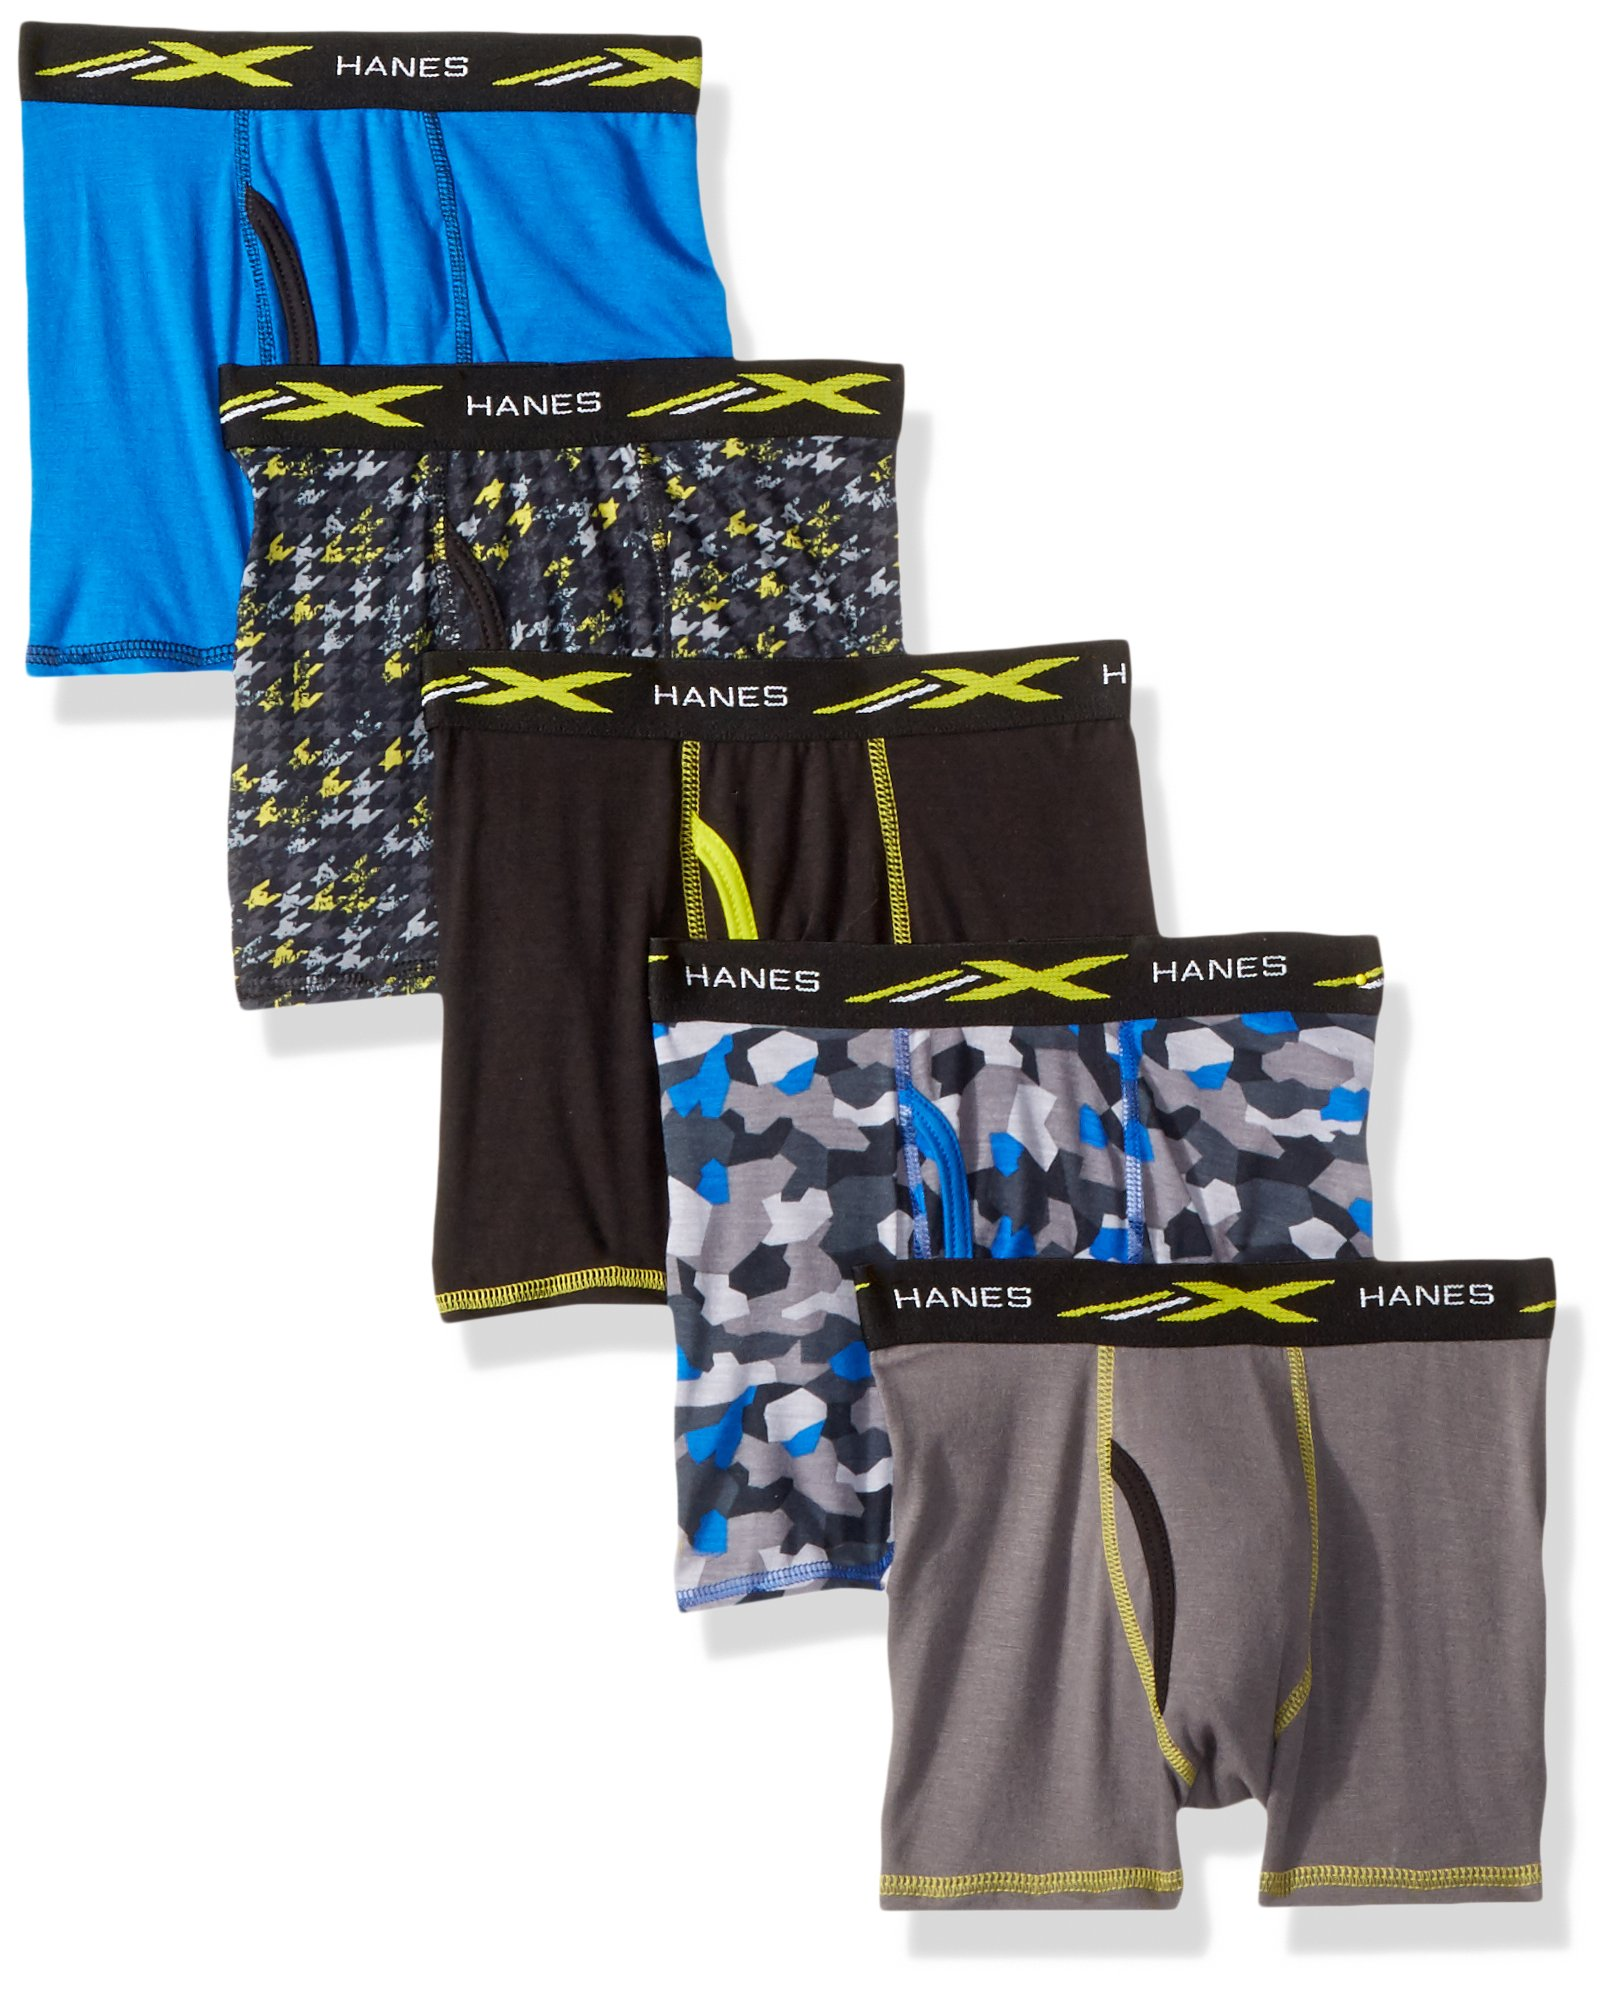 Hanes Boys' Active Cool X-Temp Boxer Brief 5-Pack, Assorted, Medium by Hanes